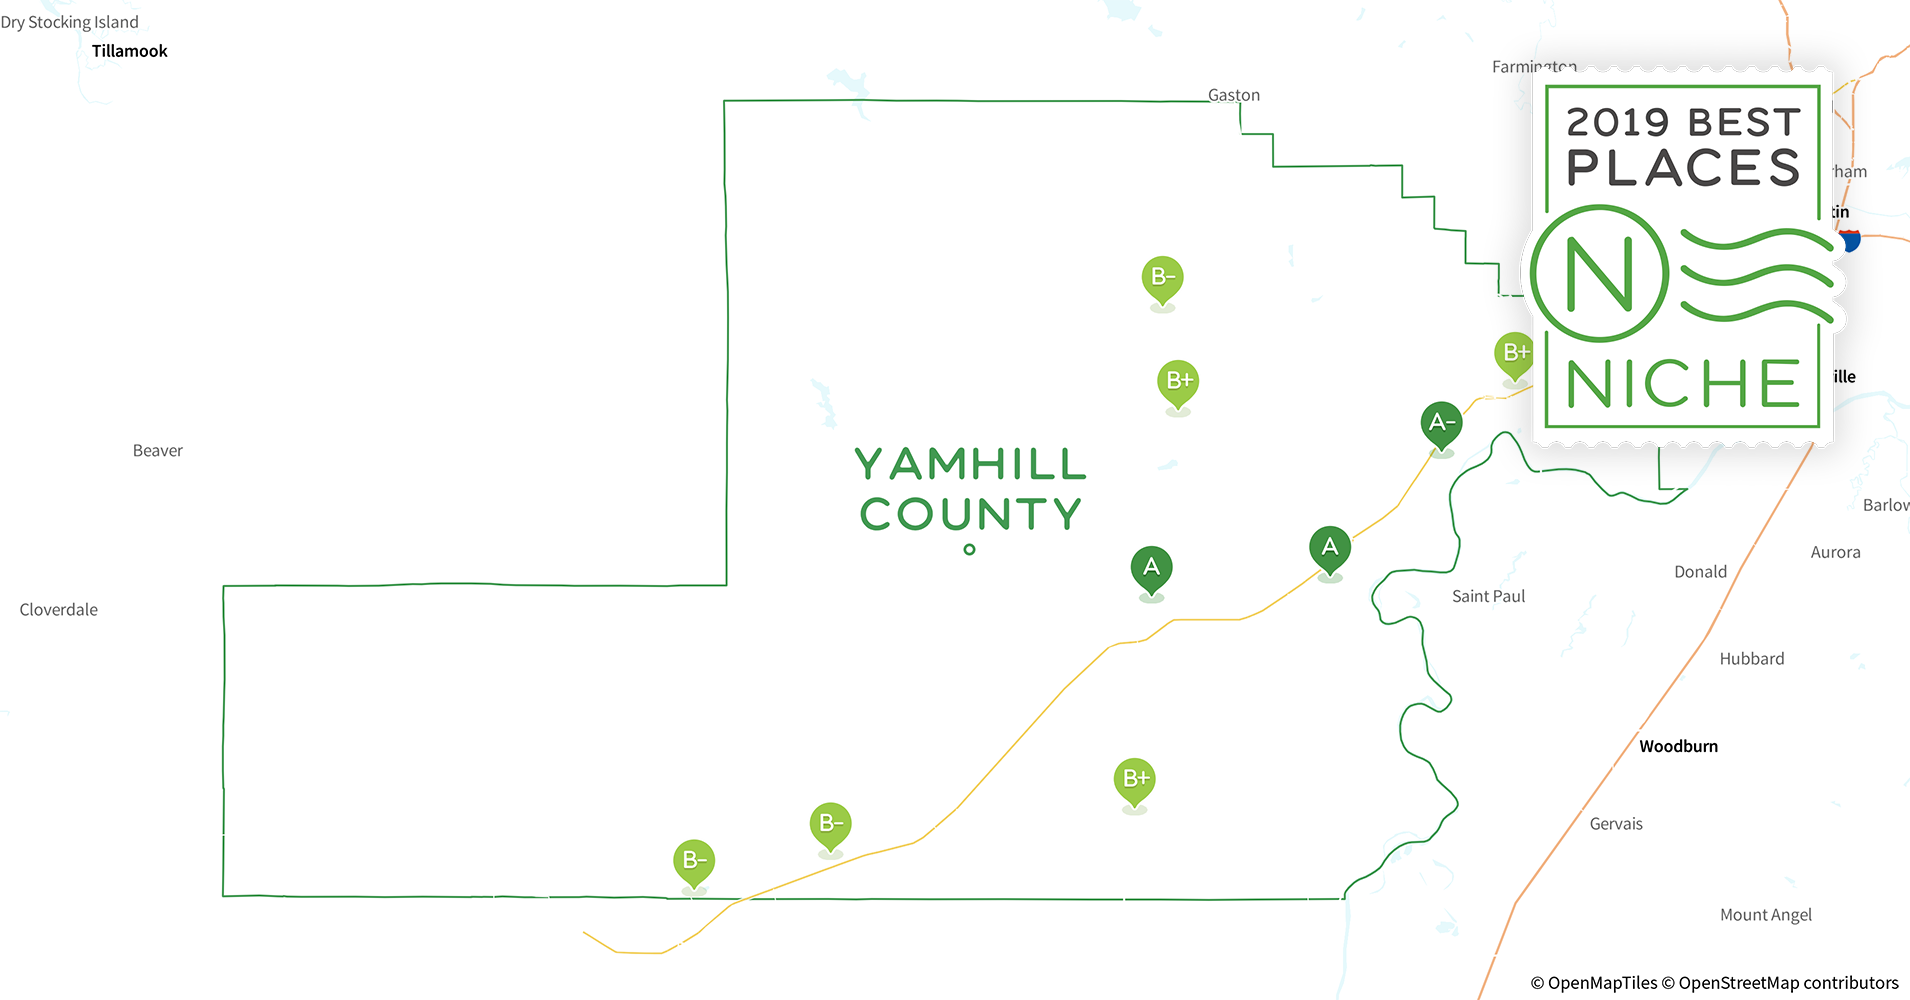 2019 Best Places to Live in Yamhill County, OR - Niche Yamhill County Map on mcminnville map, oregon map, carlton or map, willamette valley county map, durham county map, kanabec county map, lincoln county map, linn county map, dunthorpe map, cowlitz county map, weston county map, clackamas county map, albany county map, columbia county map, dayton county map, portland county map, ashland county map, eugene county map, wallowa county map, marion county map,